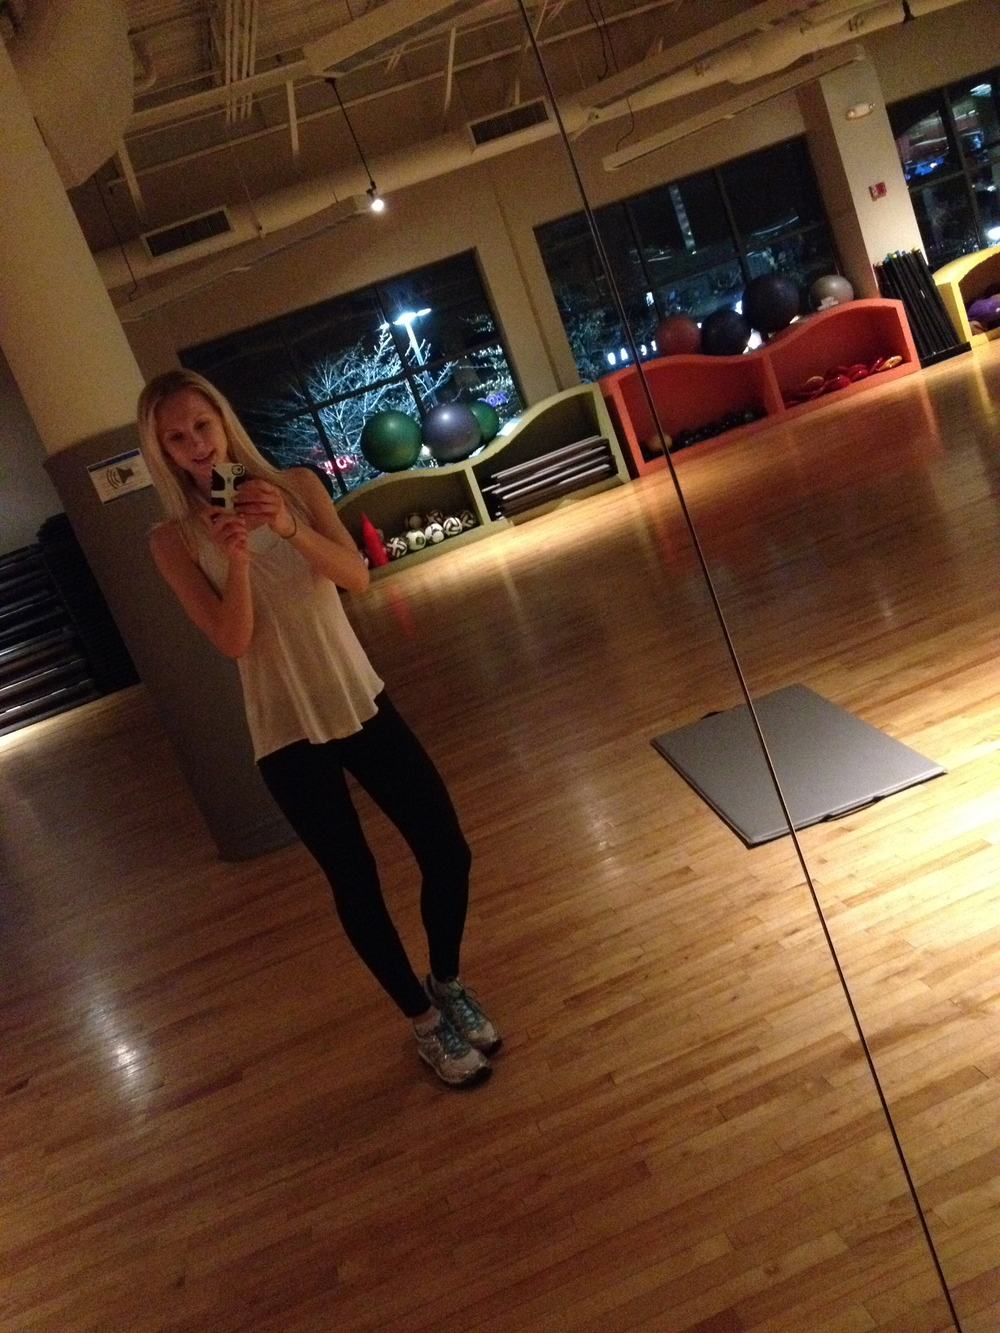 The aerobic studio is one of Lyuda's favorite destinations.